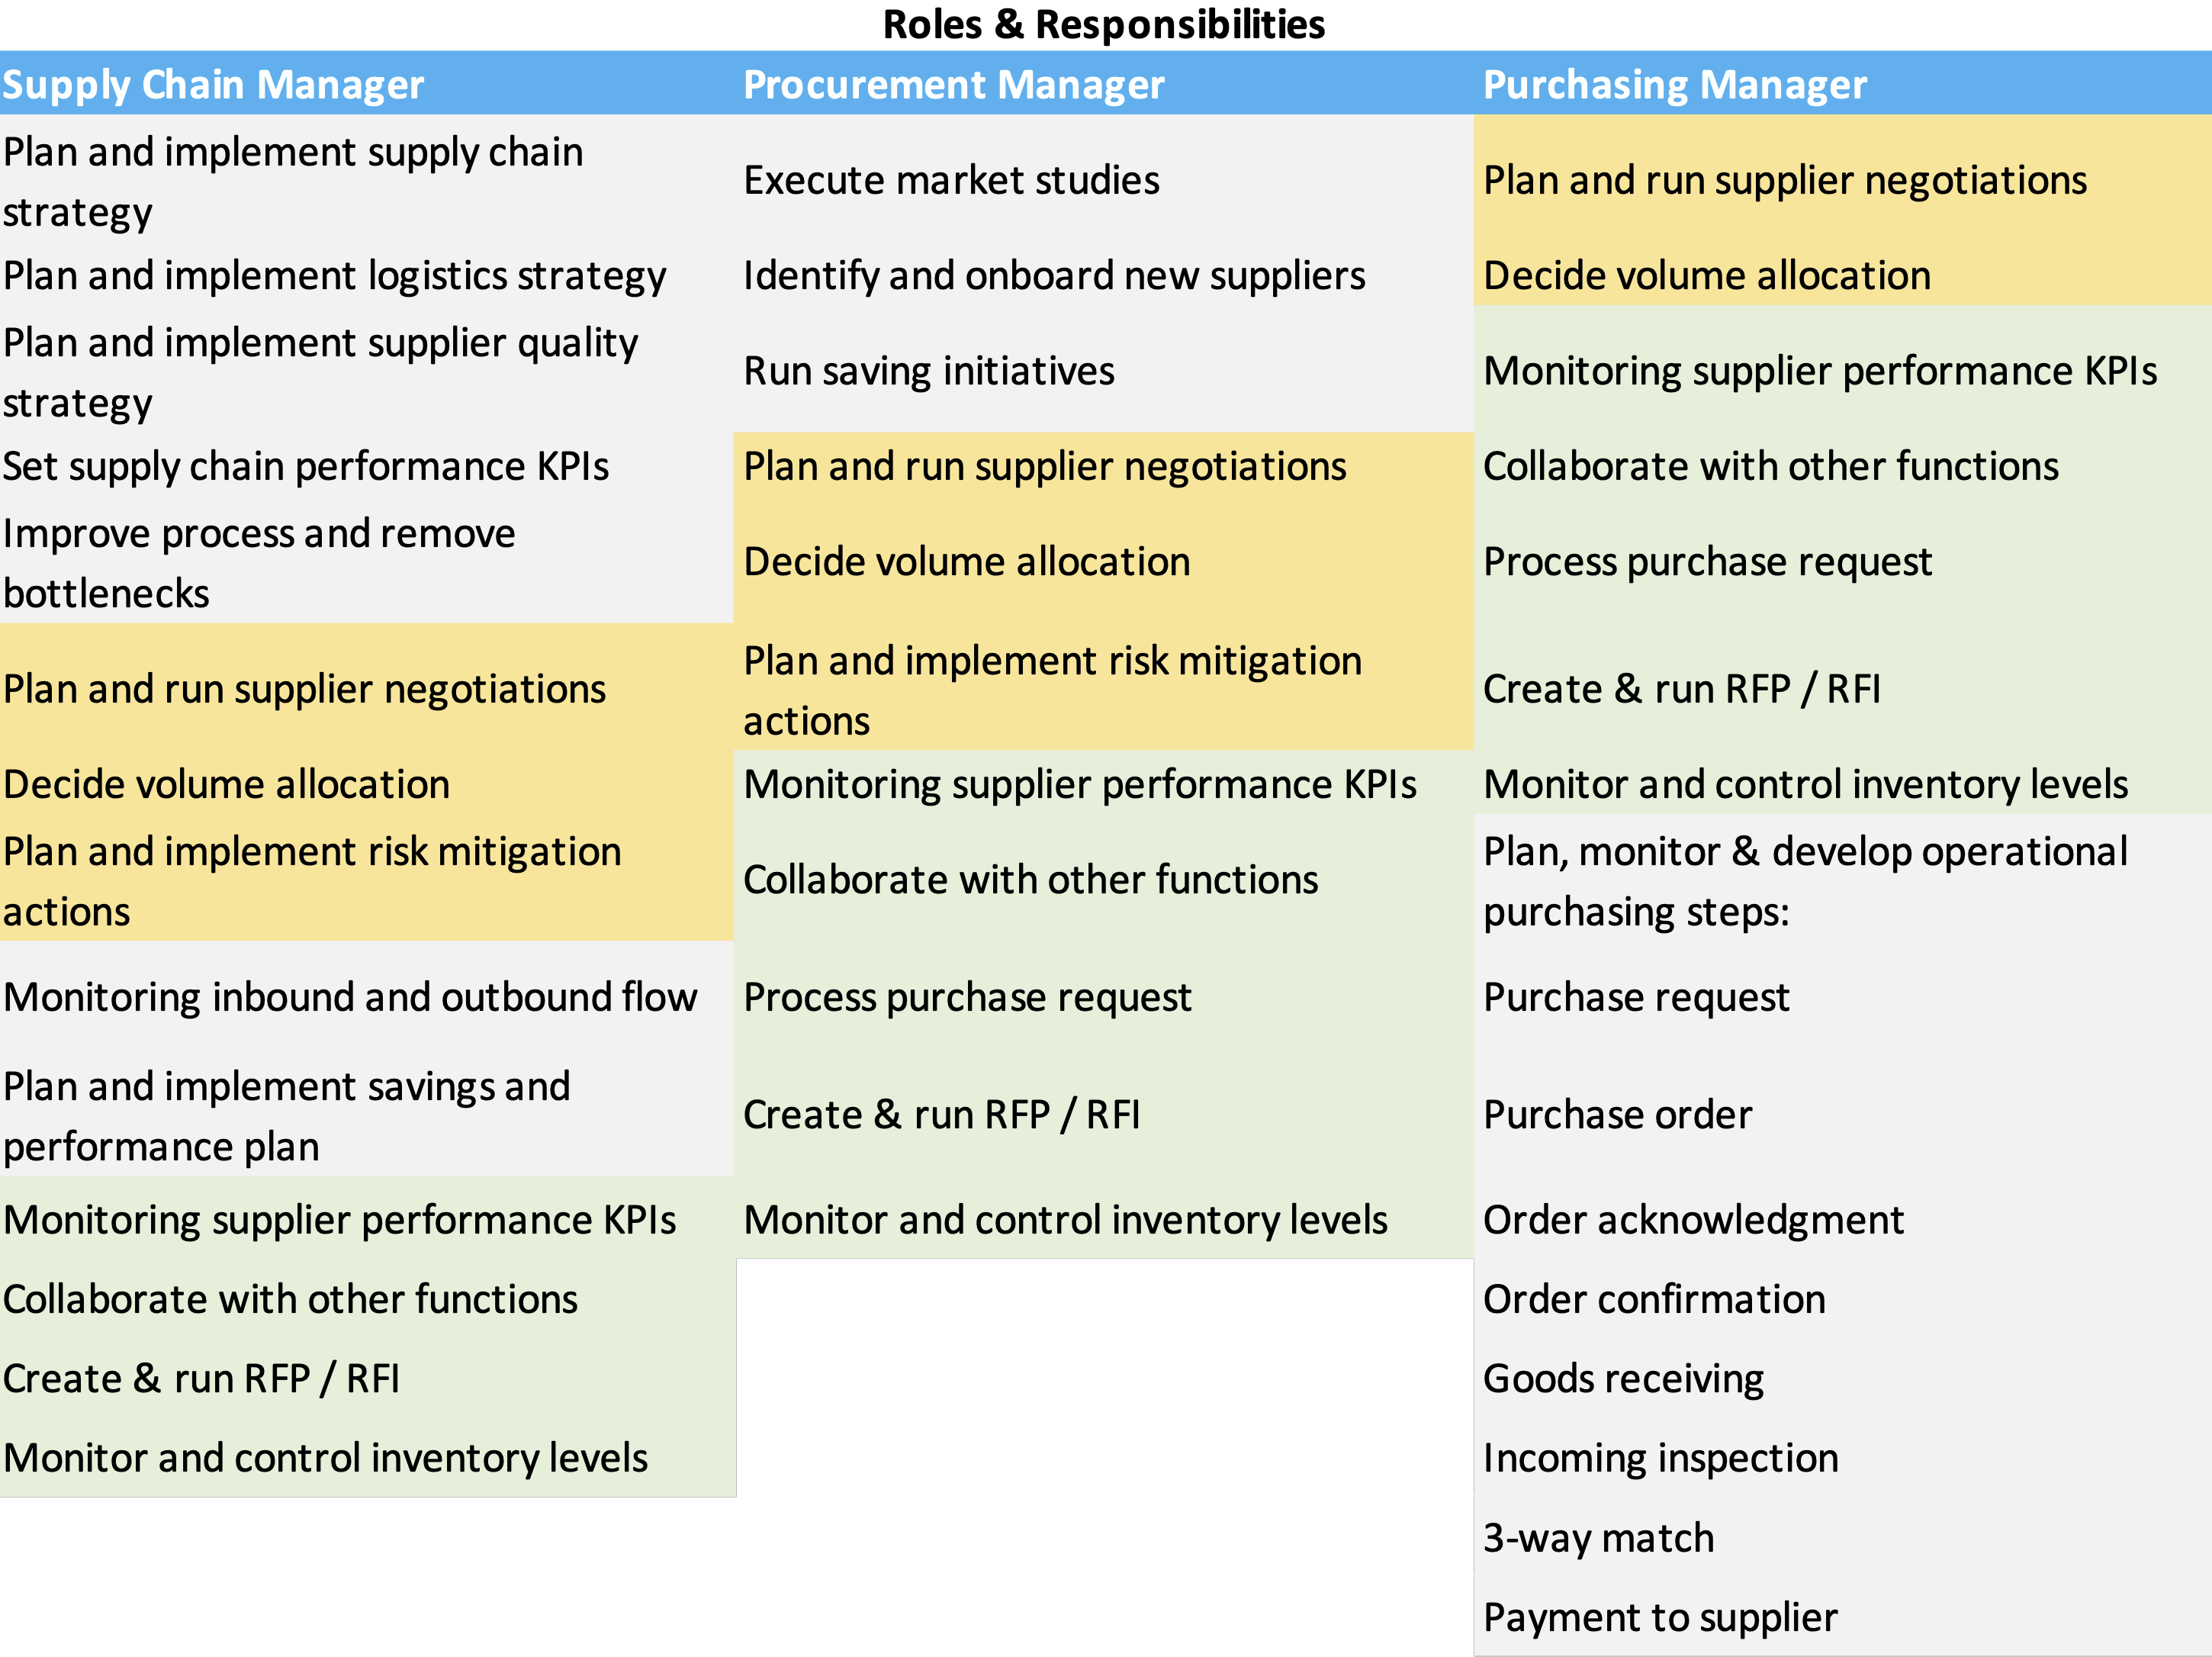 Purchasing vs Procurement vs Supply Chain Roles and Responsibilities